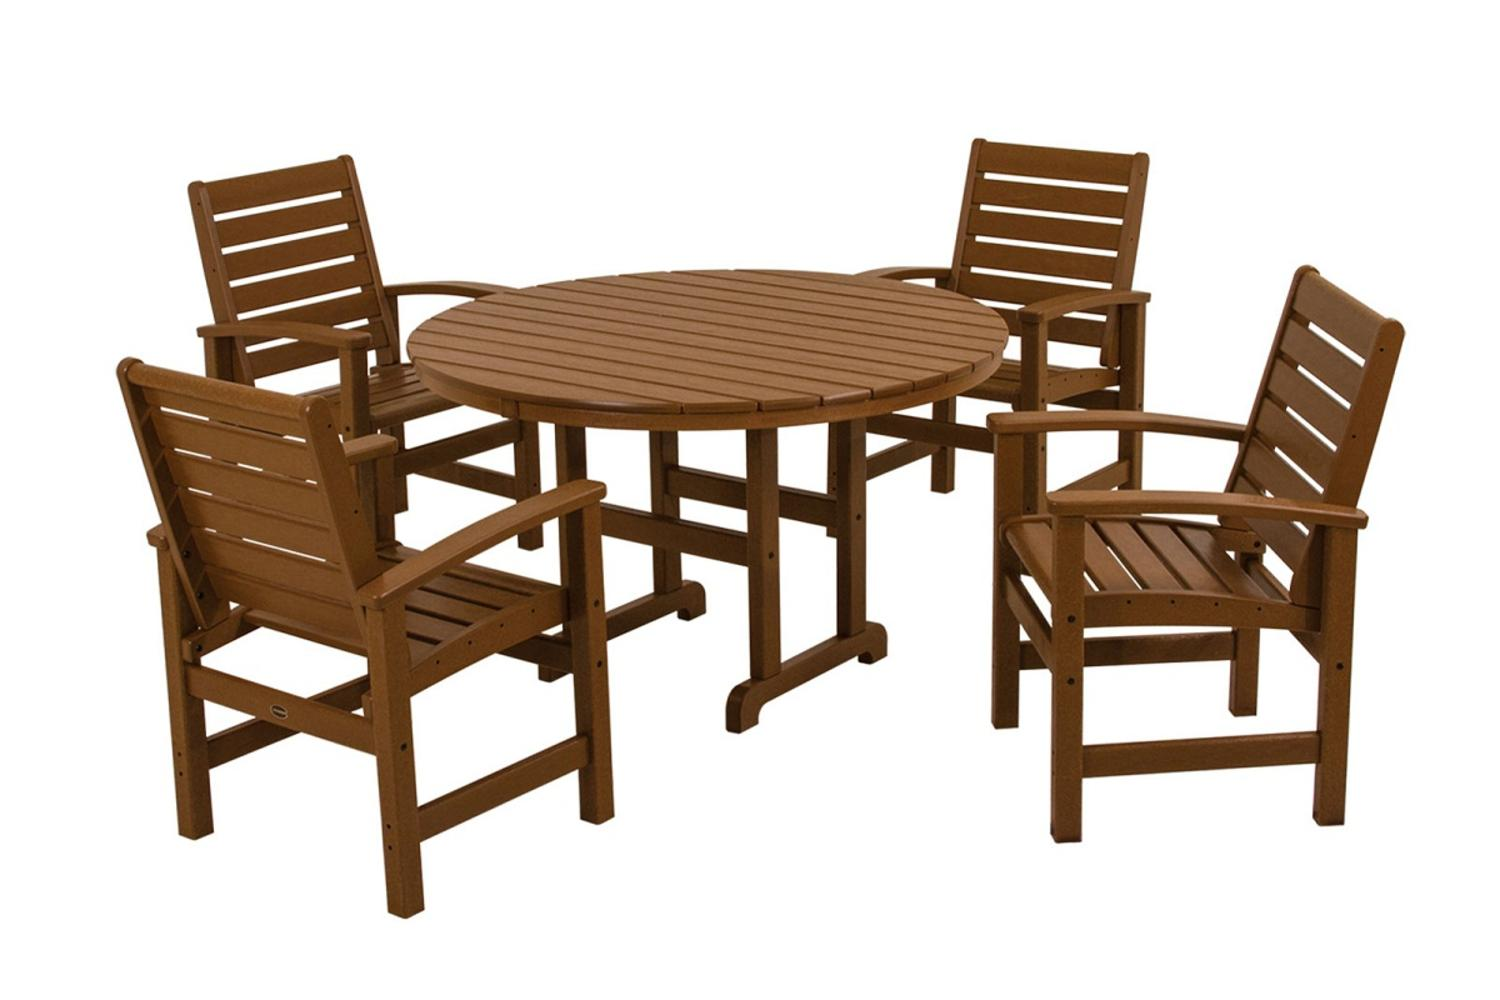 Outdoor Recycled Earth-Friendly 5-Piece Patio Dining Room Set Teak Brown by Eco-Friendly Furnishings